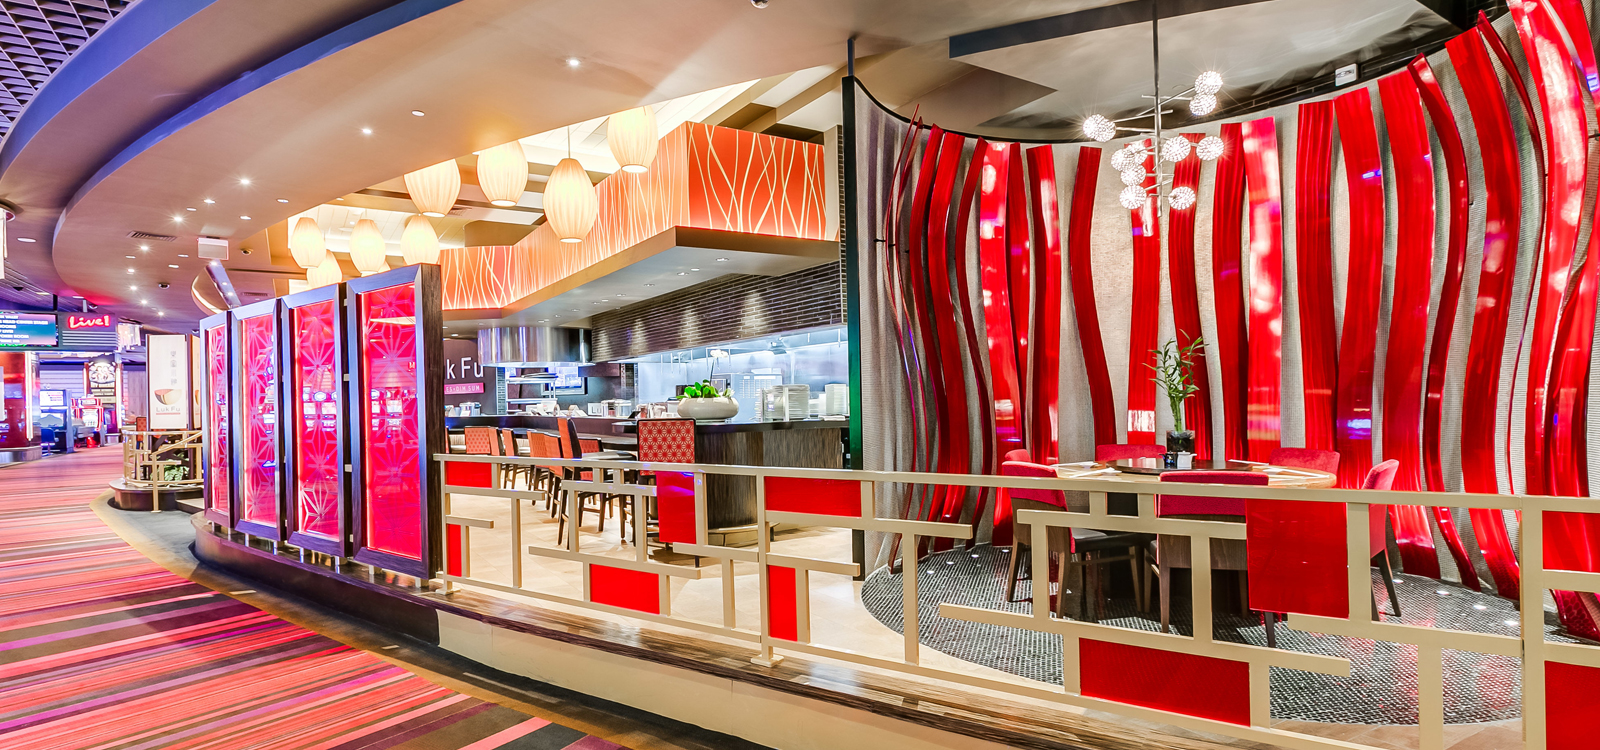 8 at Luk Fu, Maryland Live Casino, Baltimore MD, commercial renovation by UrbanBuilt